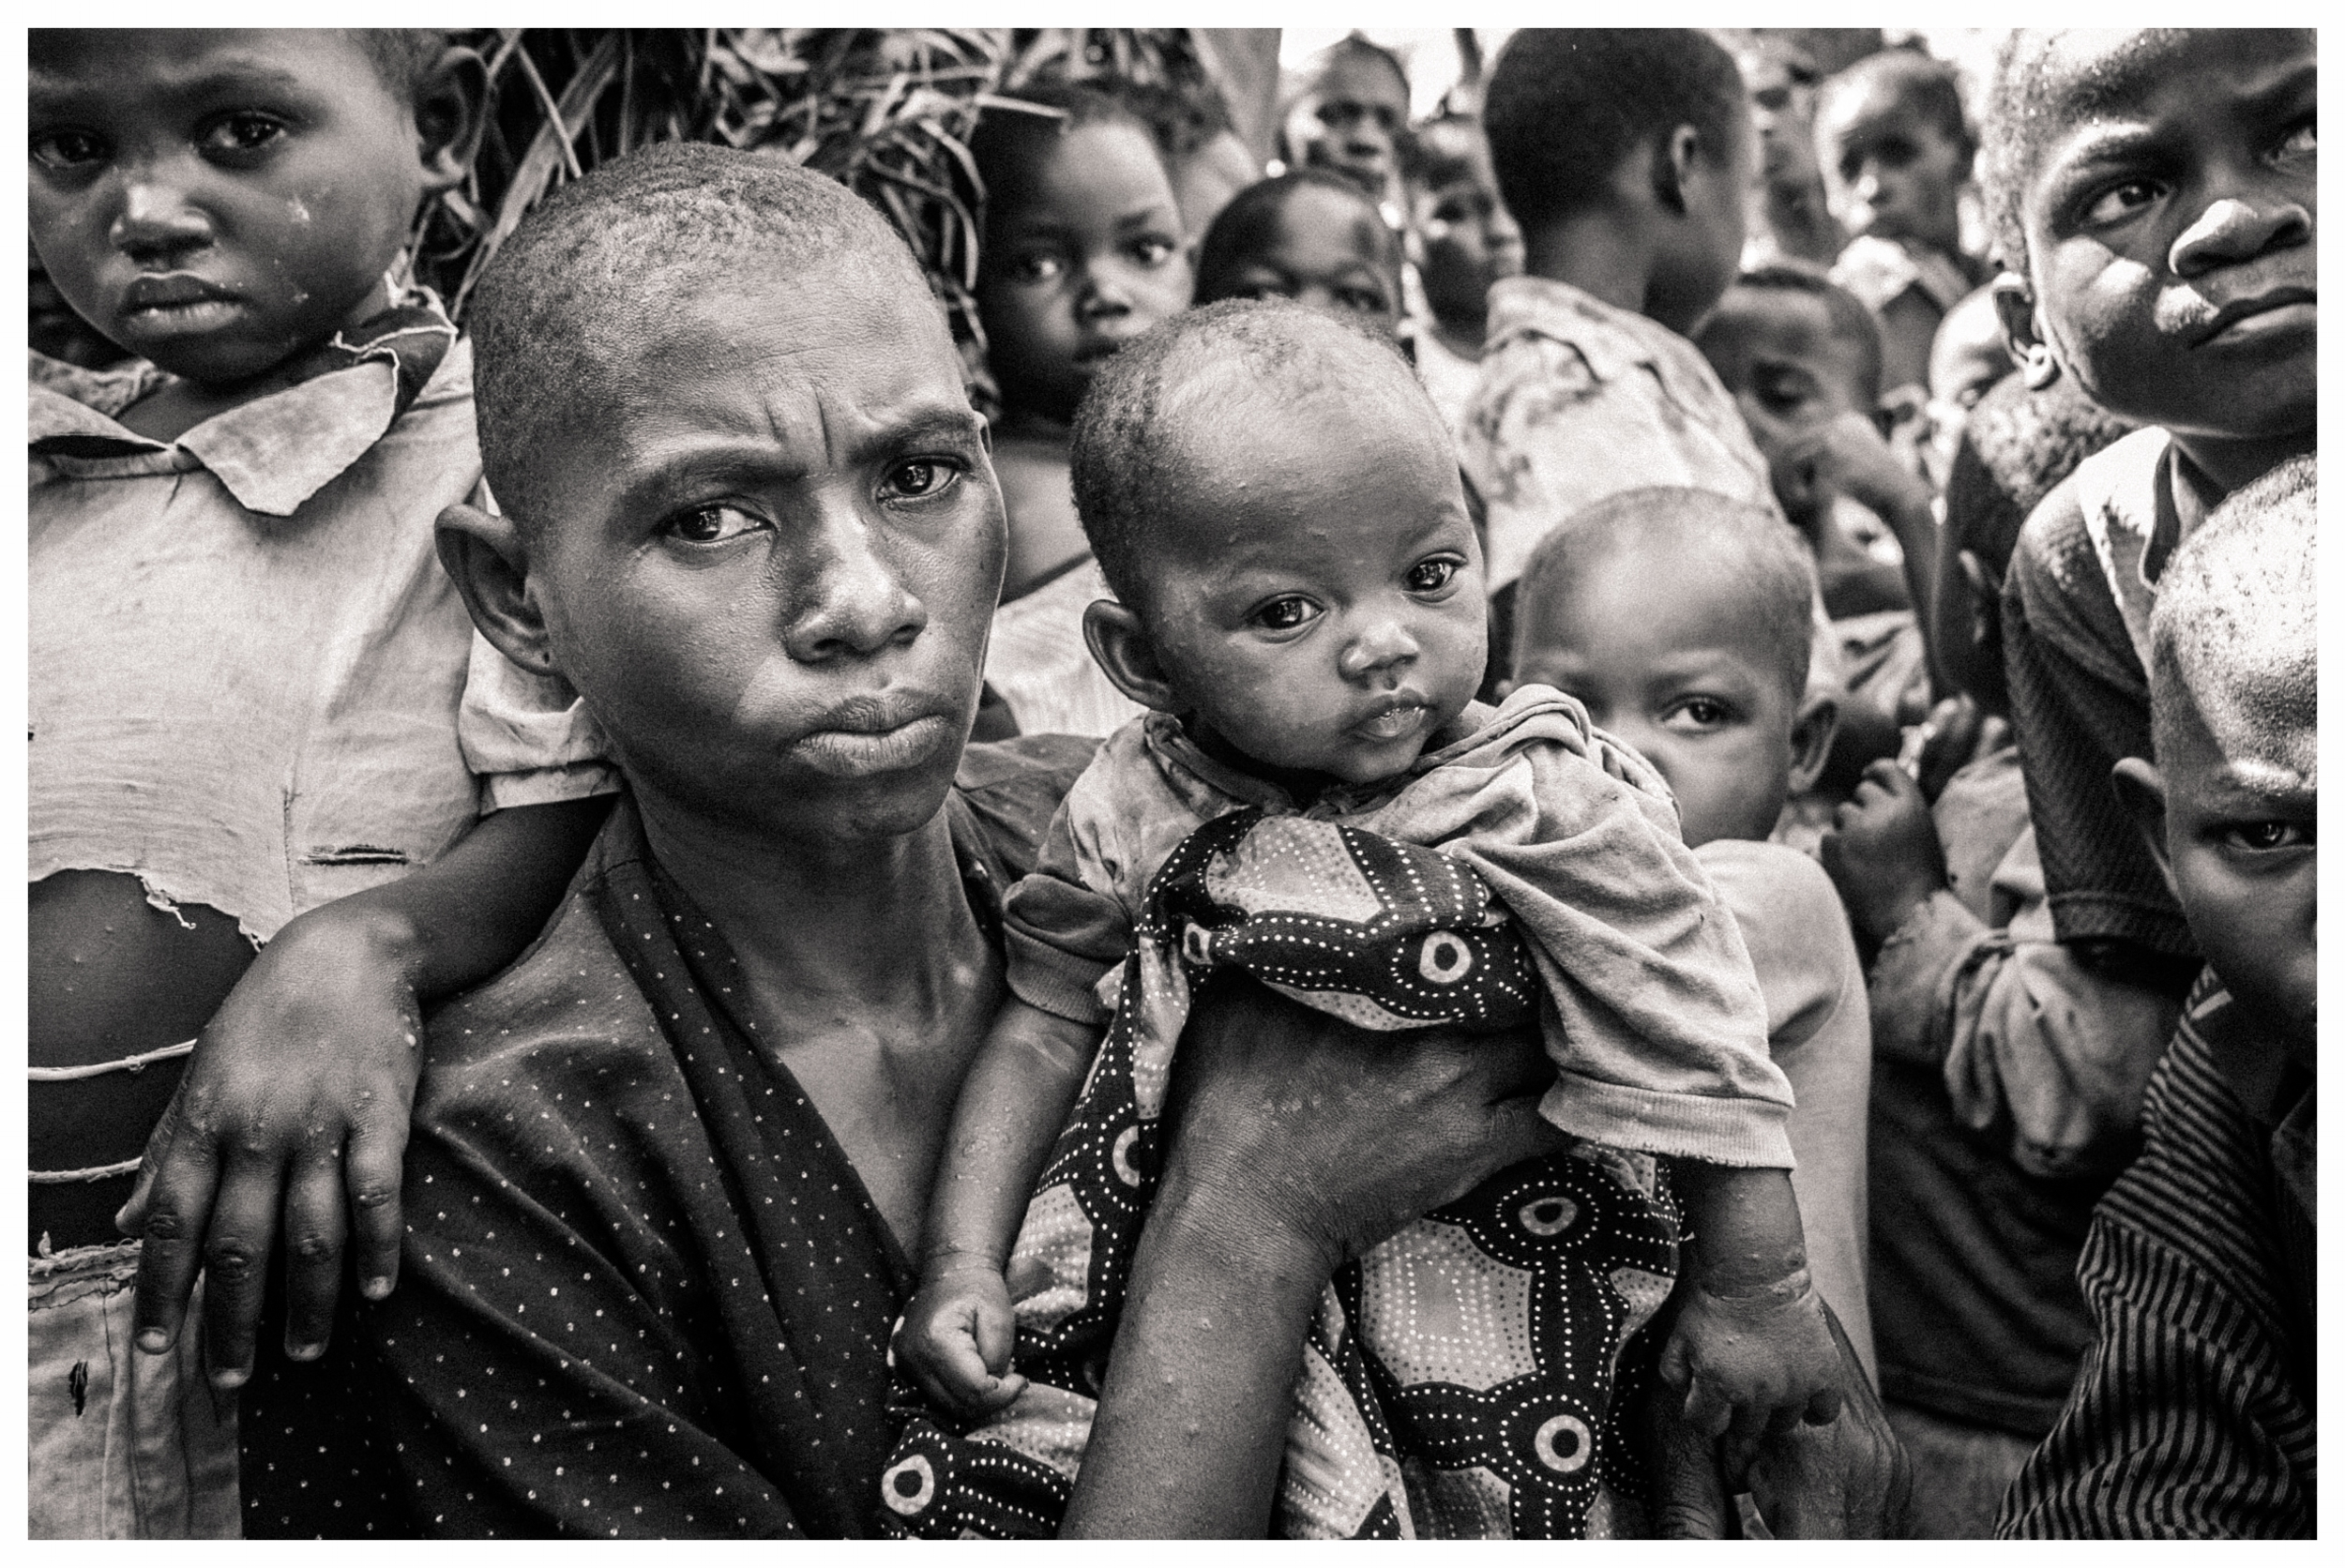 Displaced mother and child following atrocities in north east Congo. Photo © Marcus Perkins